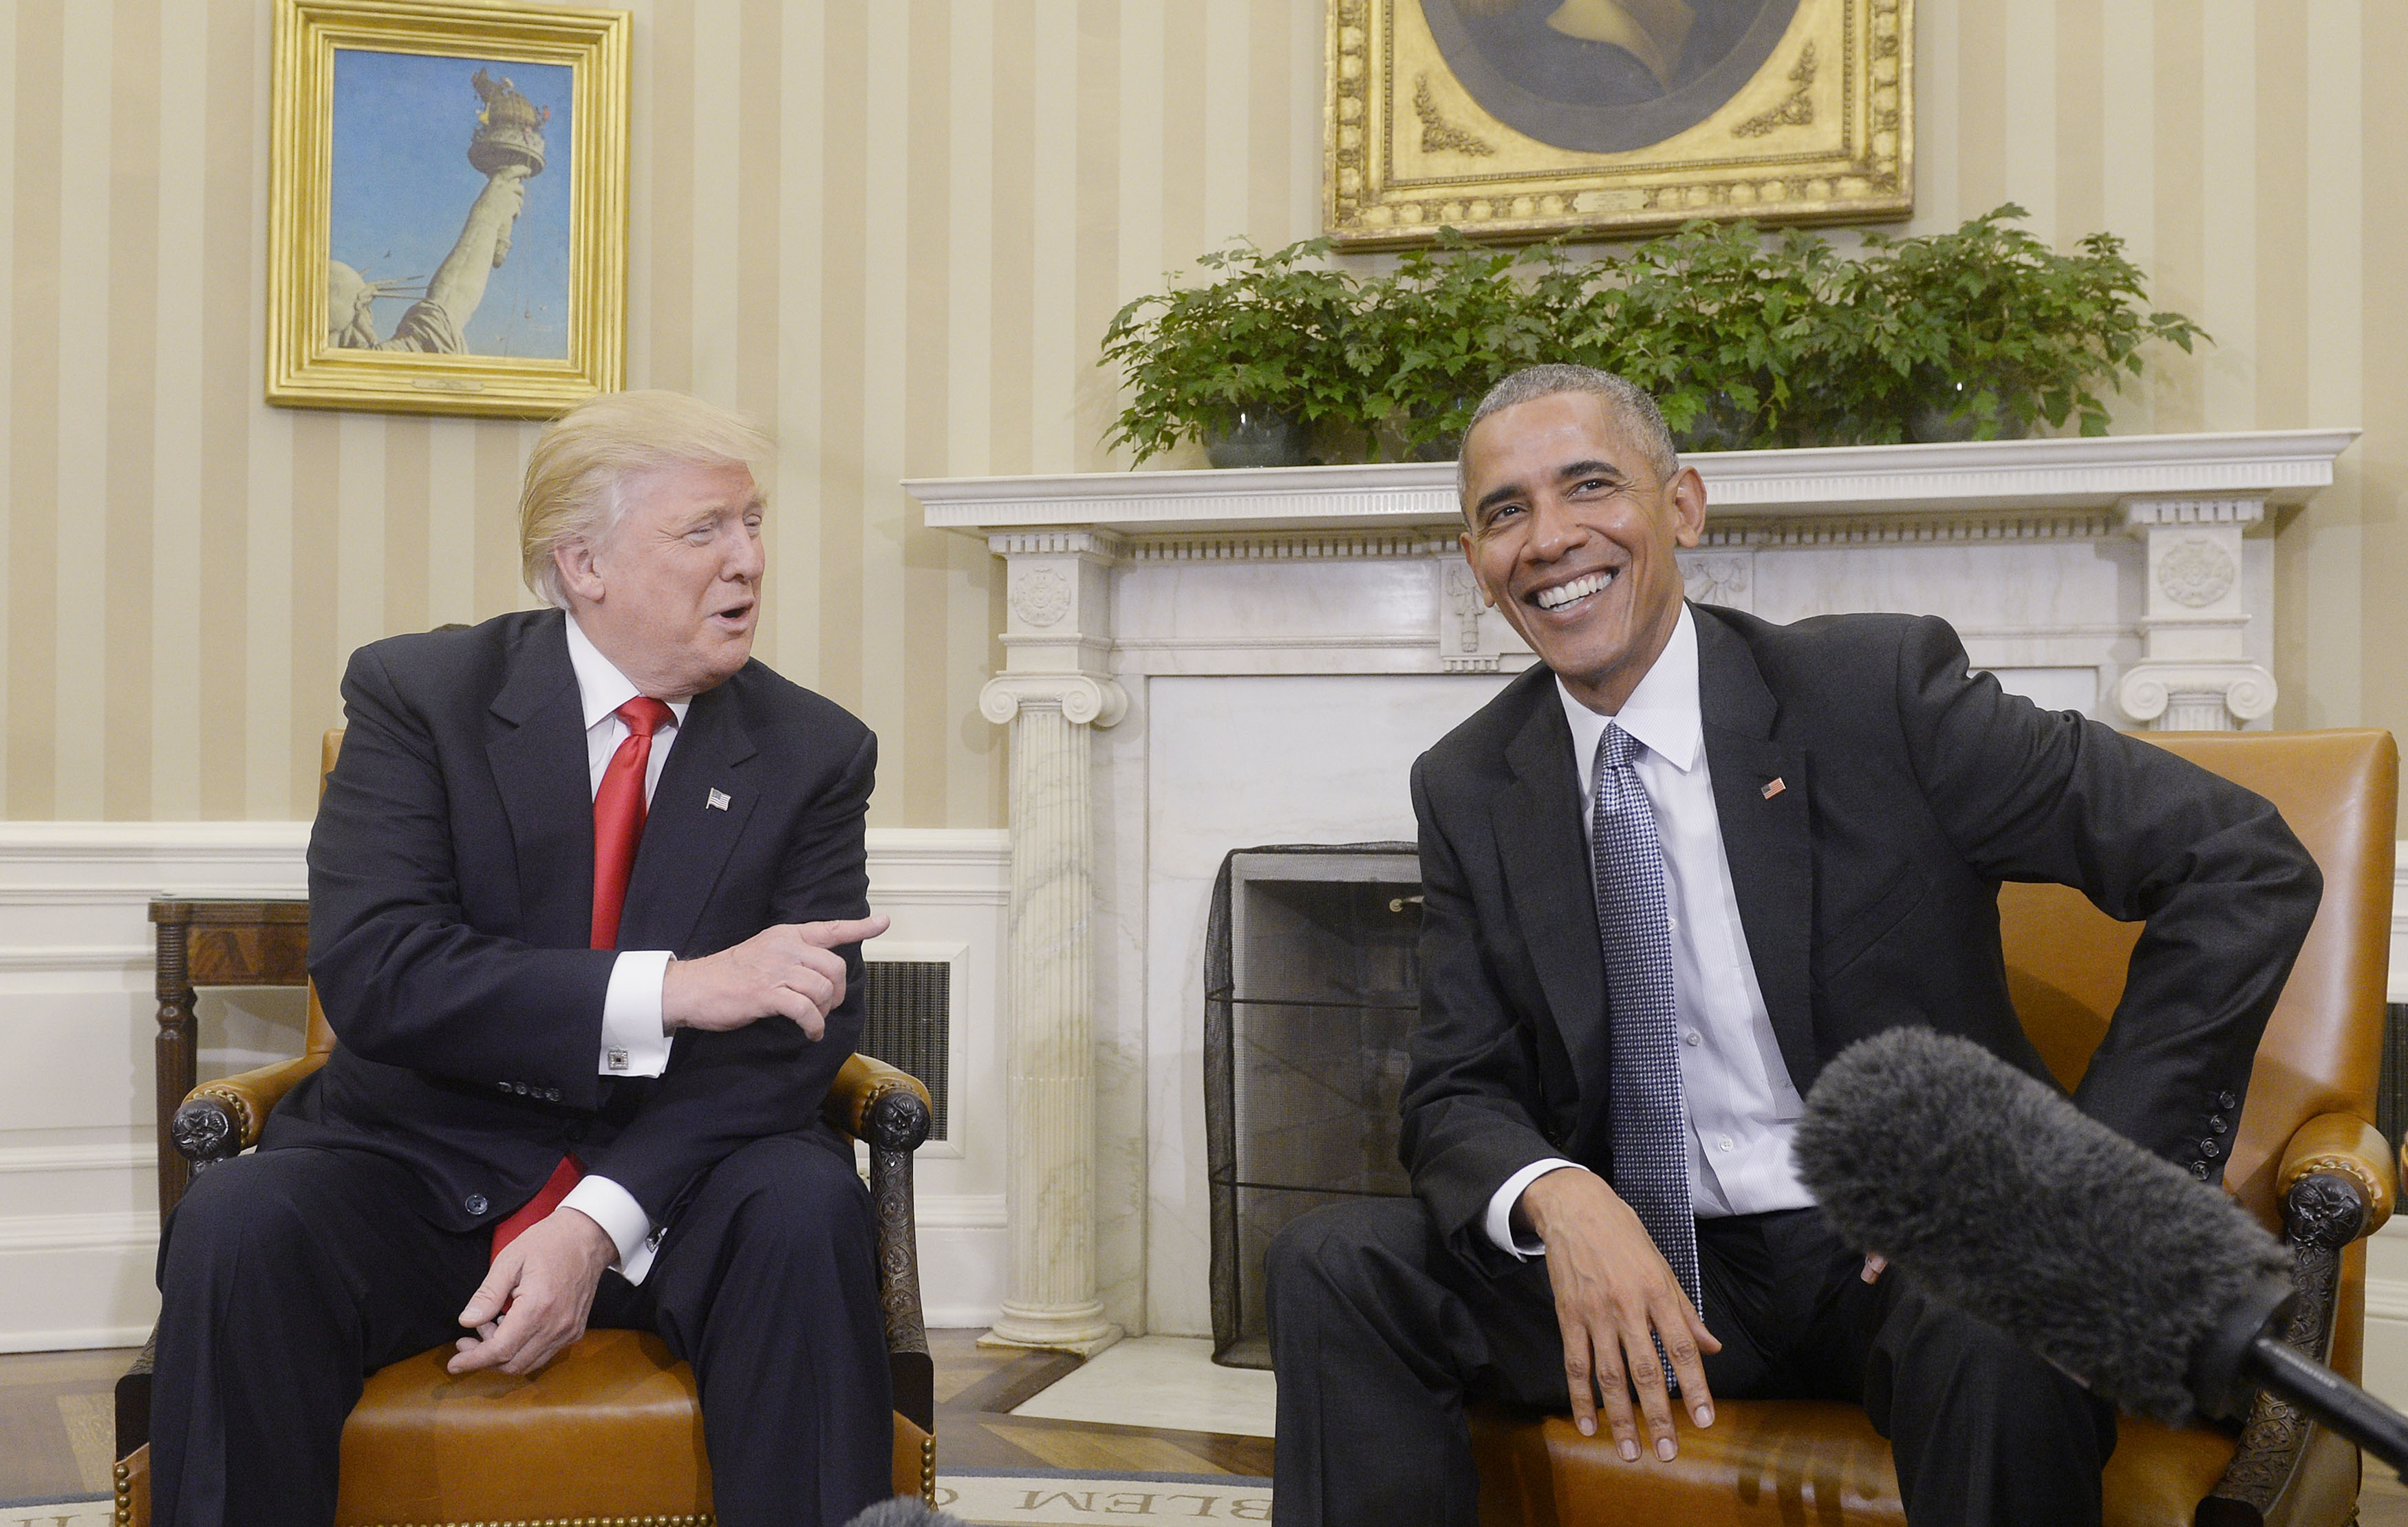 U.S. President Barack Obama meets with President-elect Donald Trump at the White House - DC